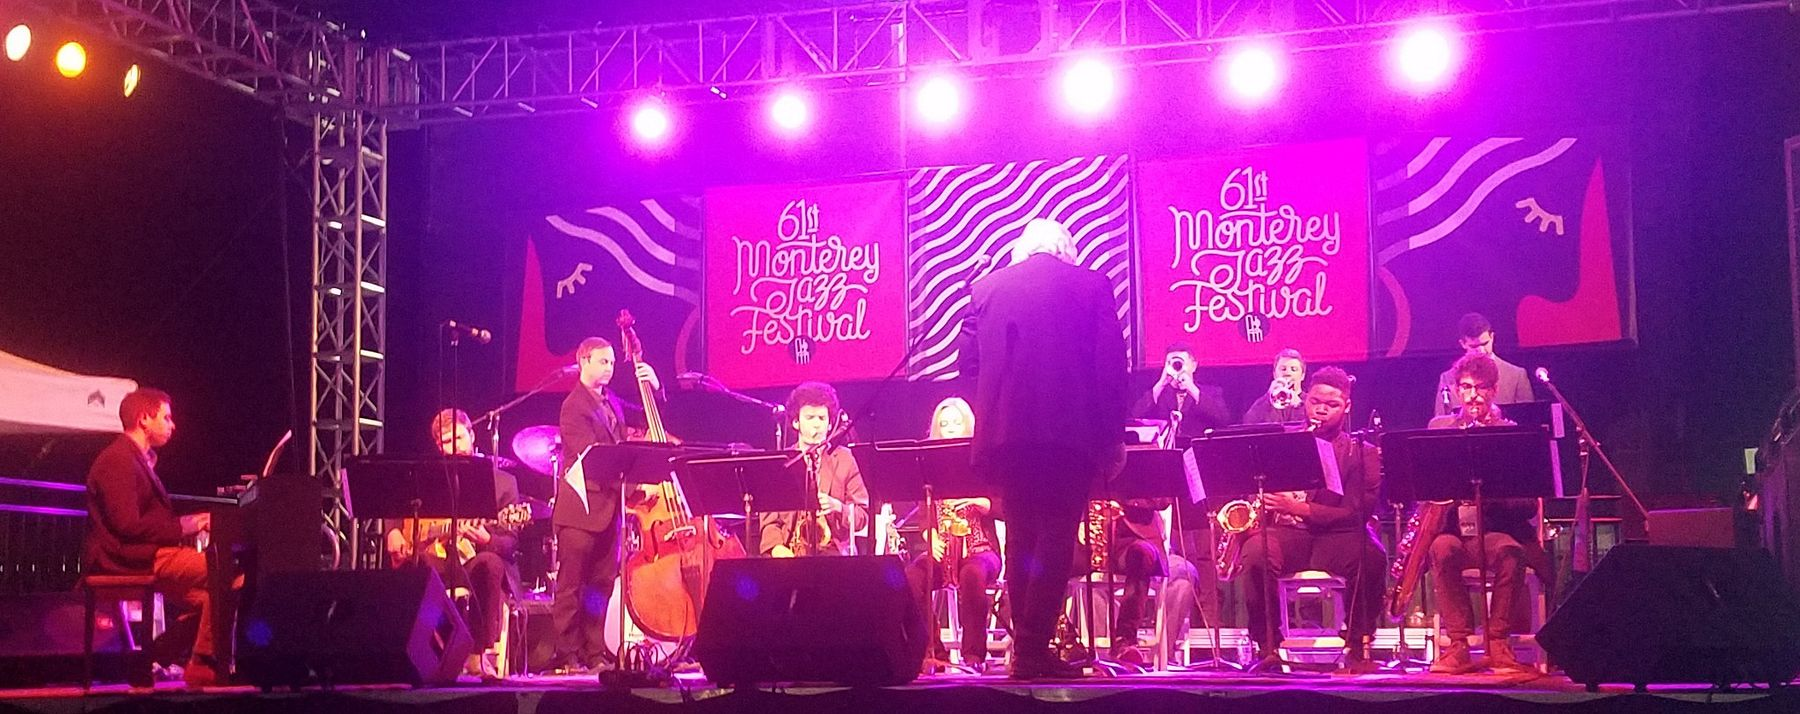 Lamont Jazz Orchestra performs at the  Monterey Jazz Festival.